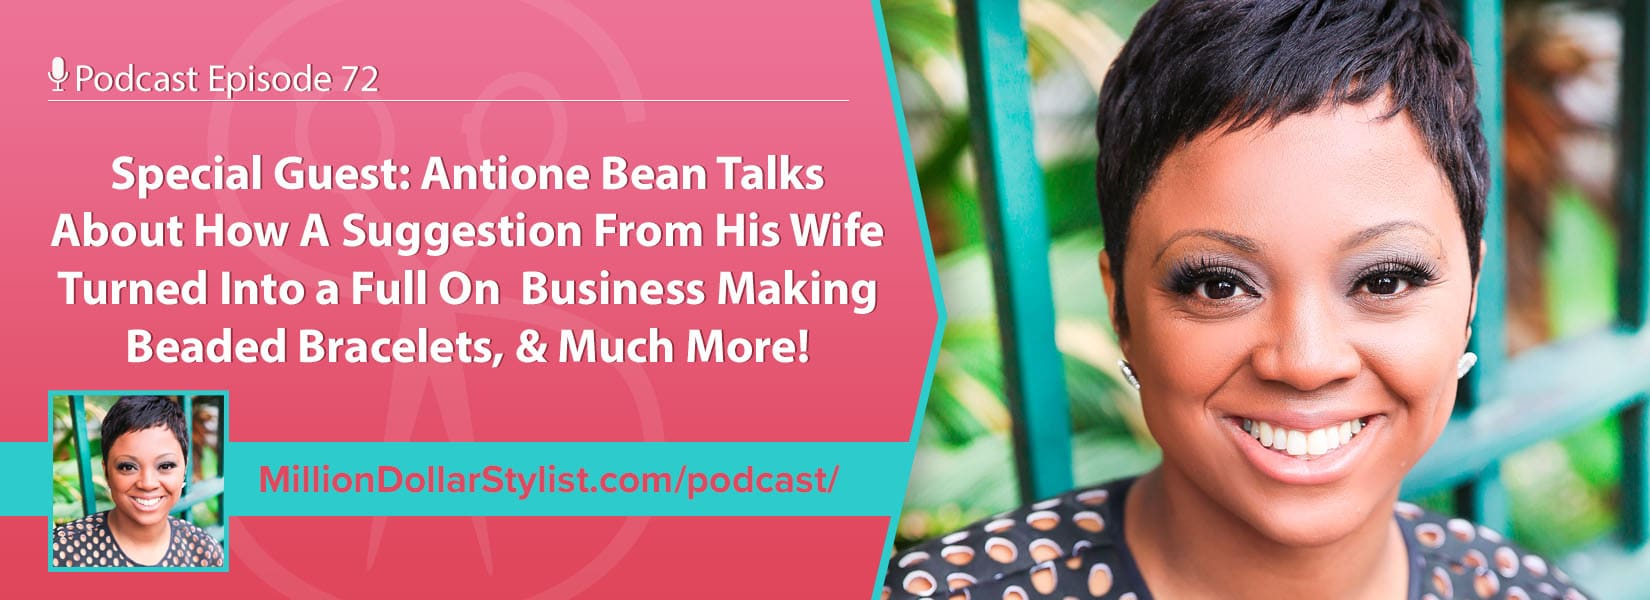 Episode 072 – Special Guest: Antione Bean Talks About How A Suggestion From His Wife Turned Into A Full On Business Making Beaded Bracelets, & Much More! 1